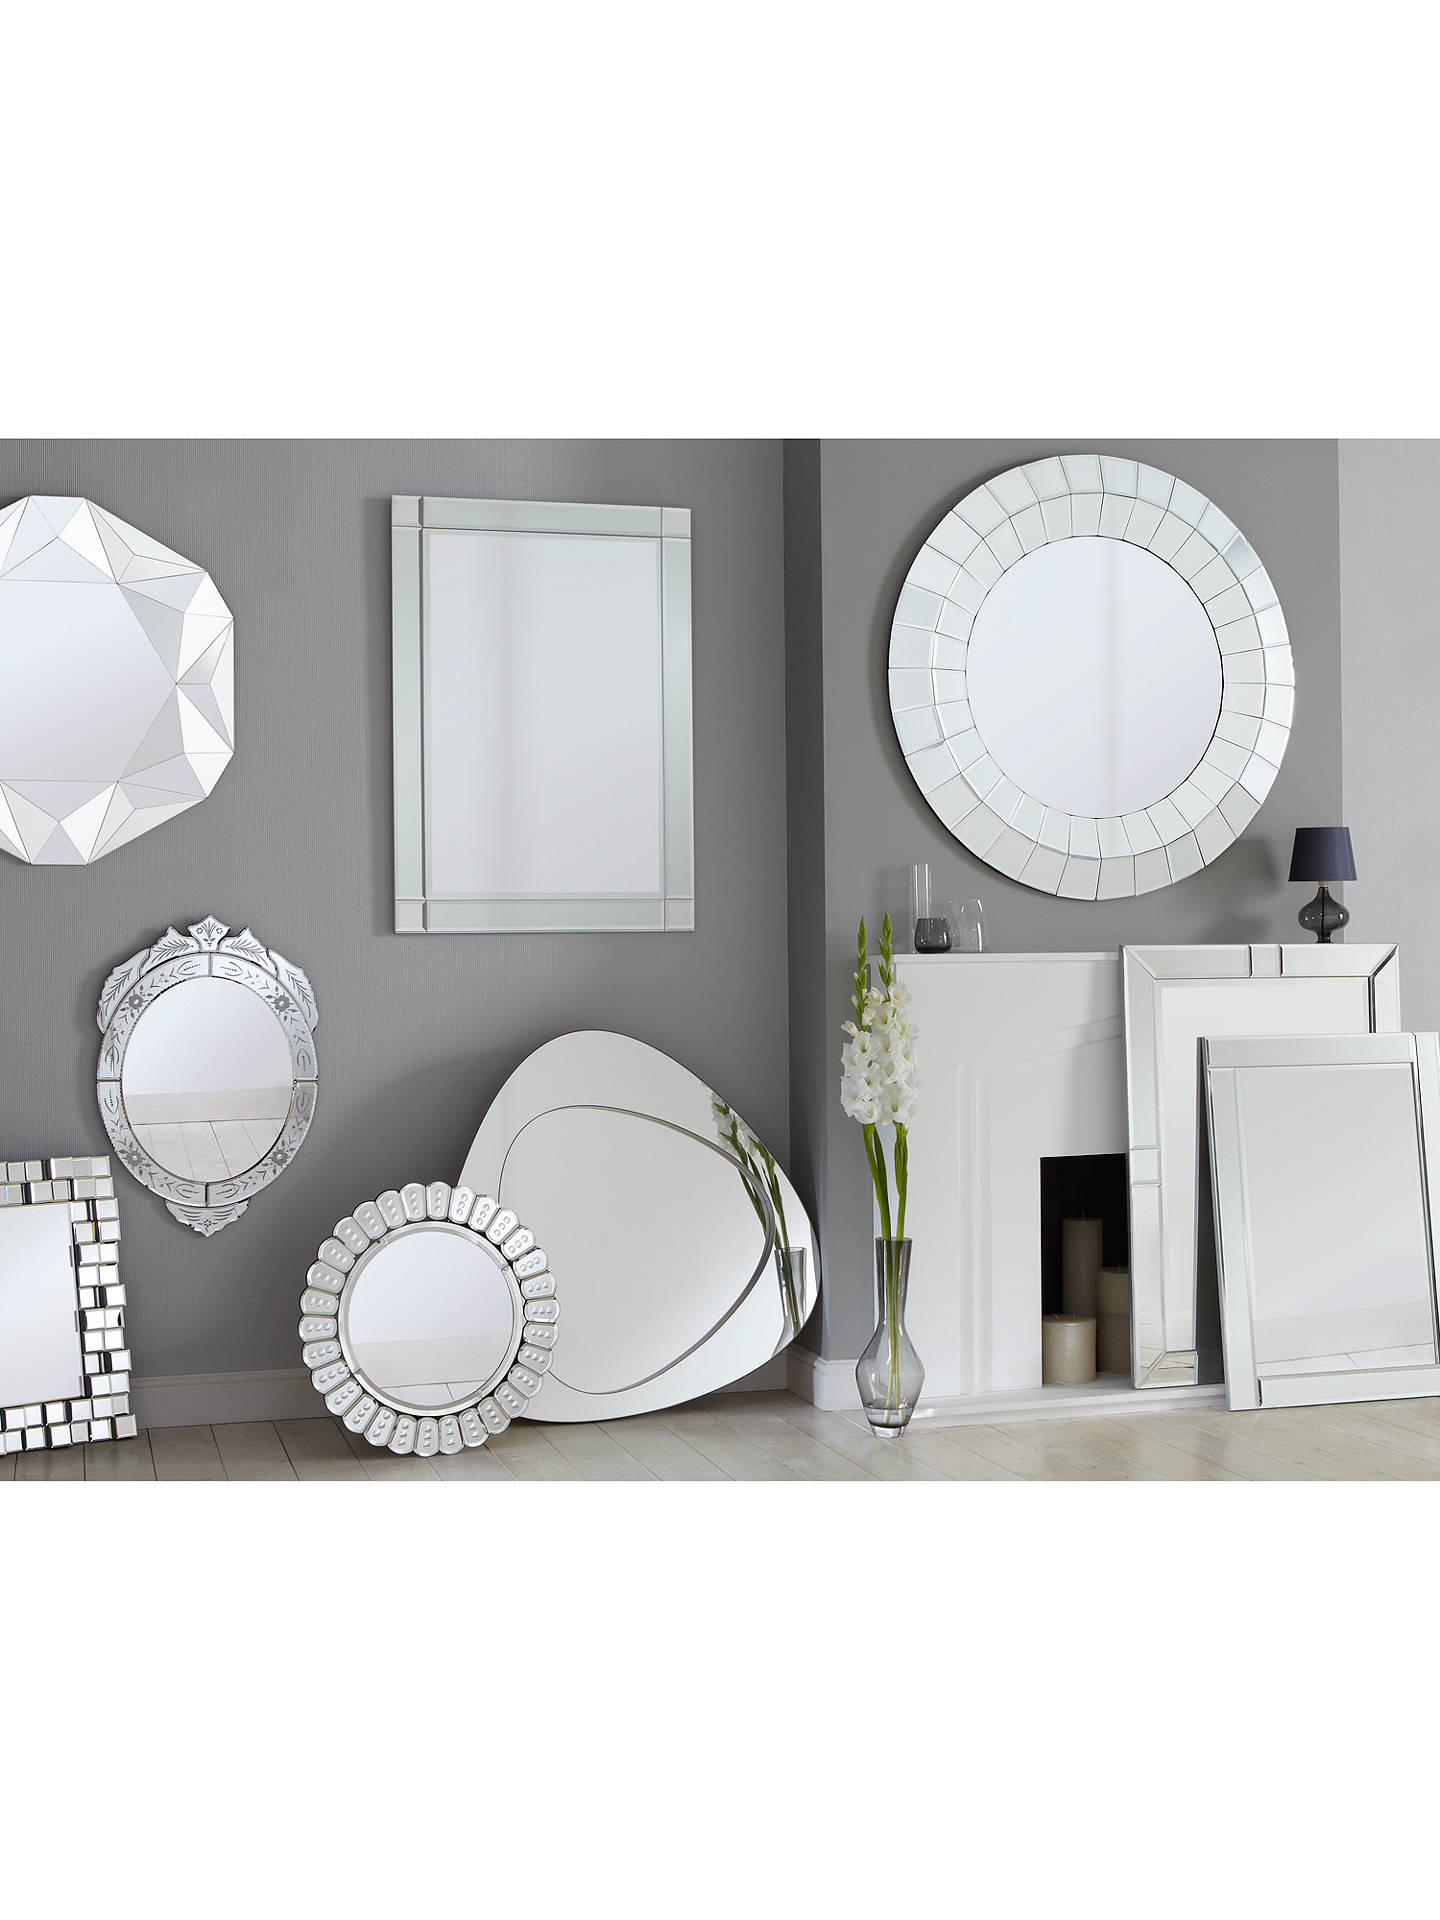 Buy John Lewis & Partners Taylor Mirror, 90 x 65cm Online at johnlewis.com